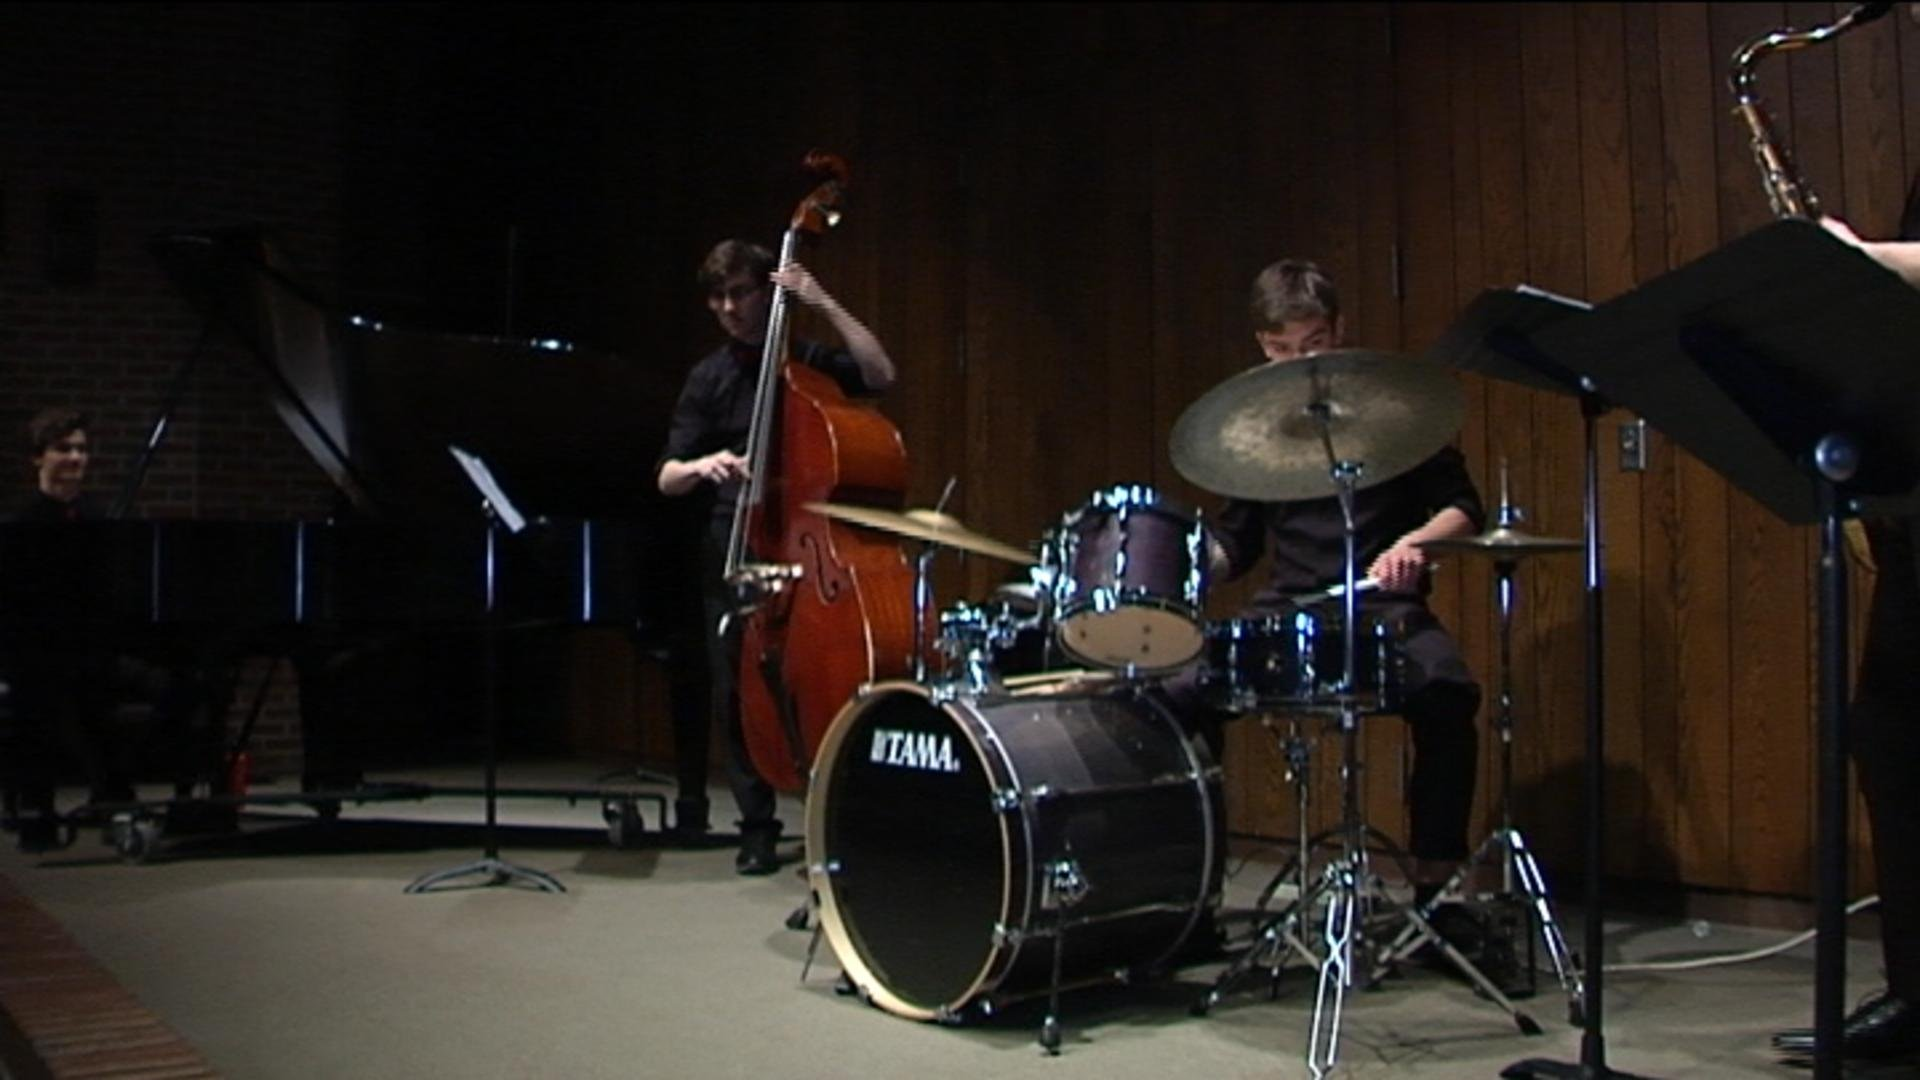 Eau Claire Jazz Festival brings crowds of student musicians to the city